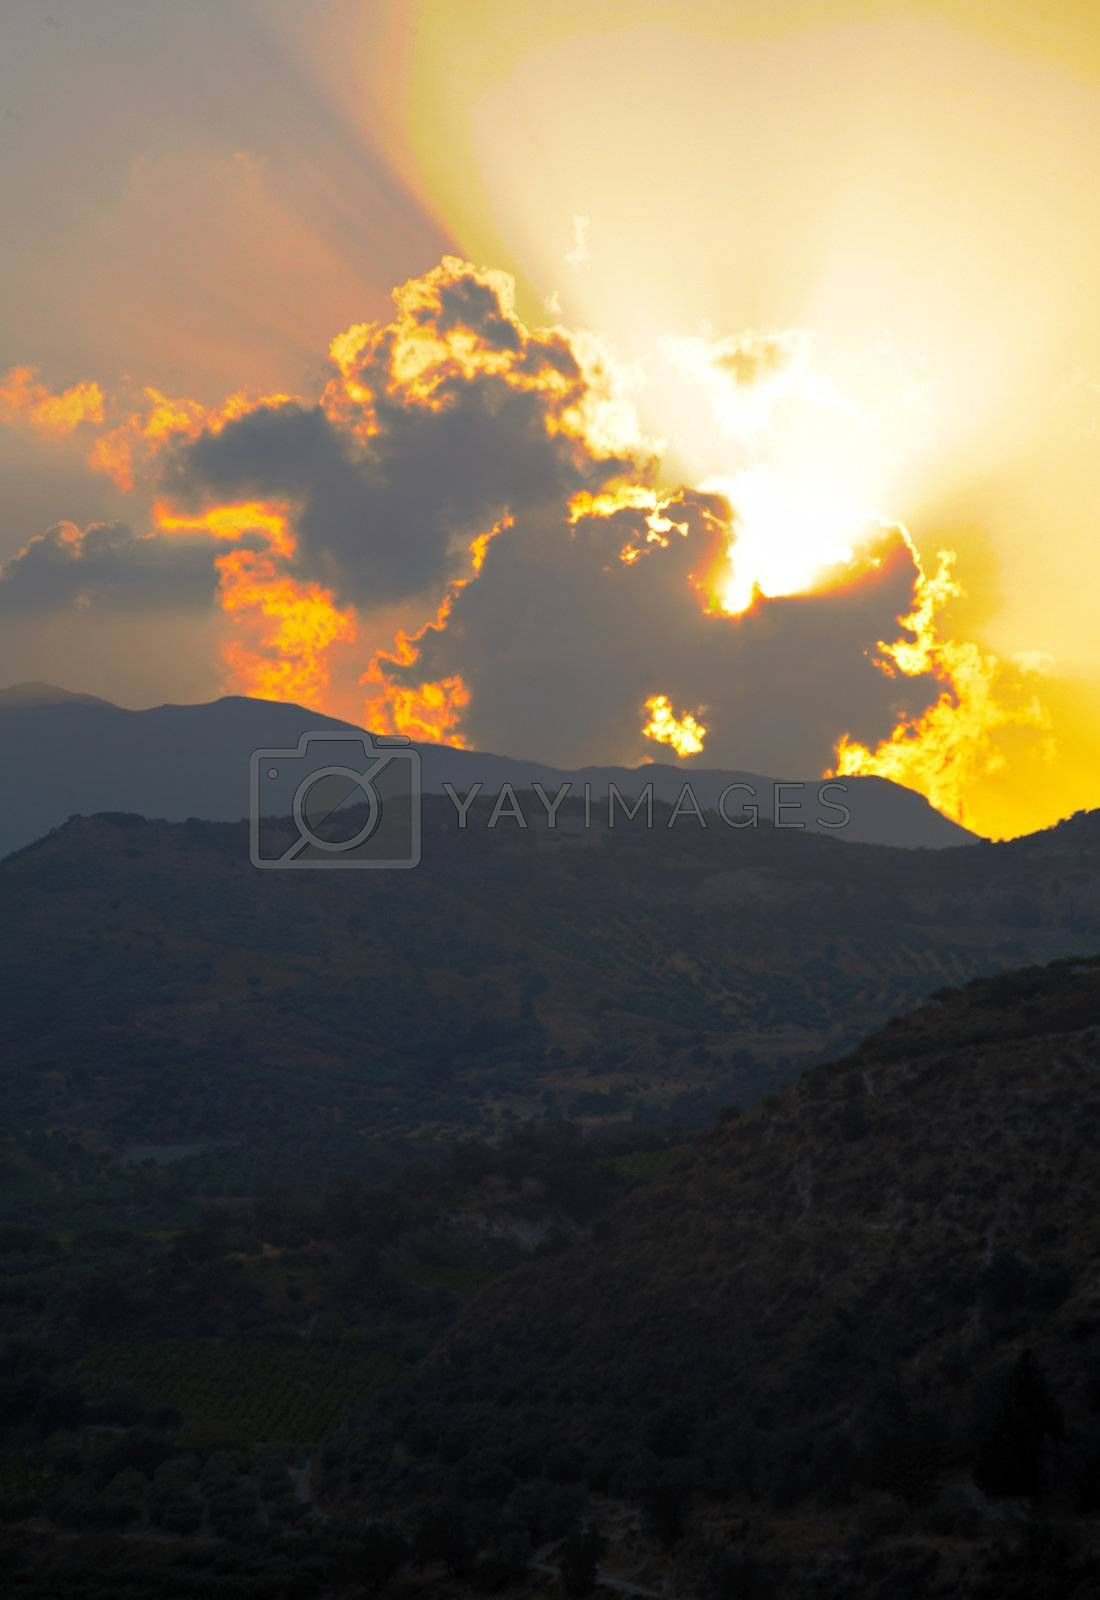 Royalty free image of Dawn over the hills by DeusNoxious